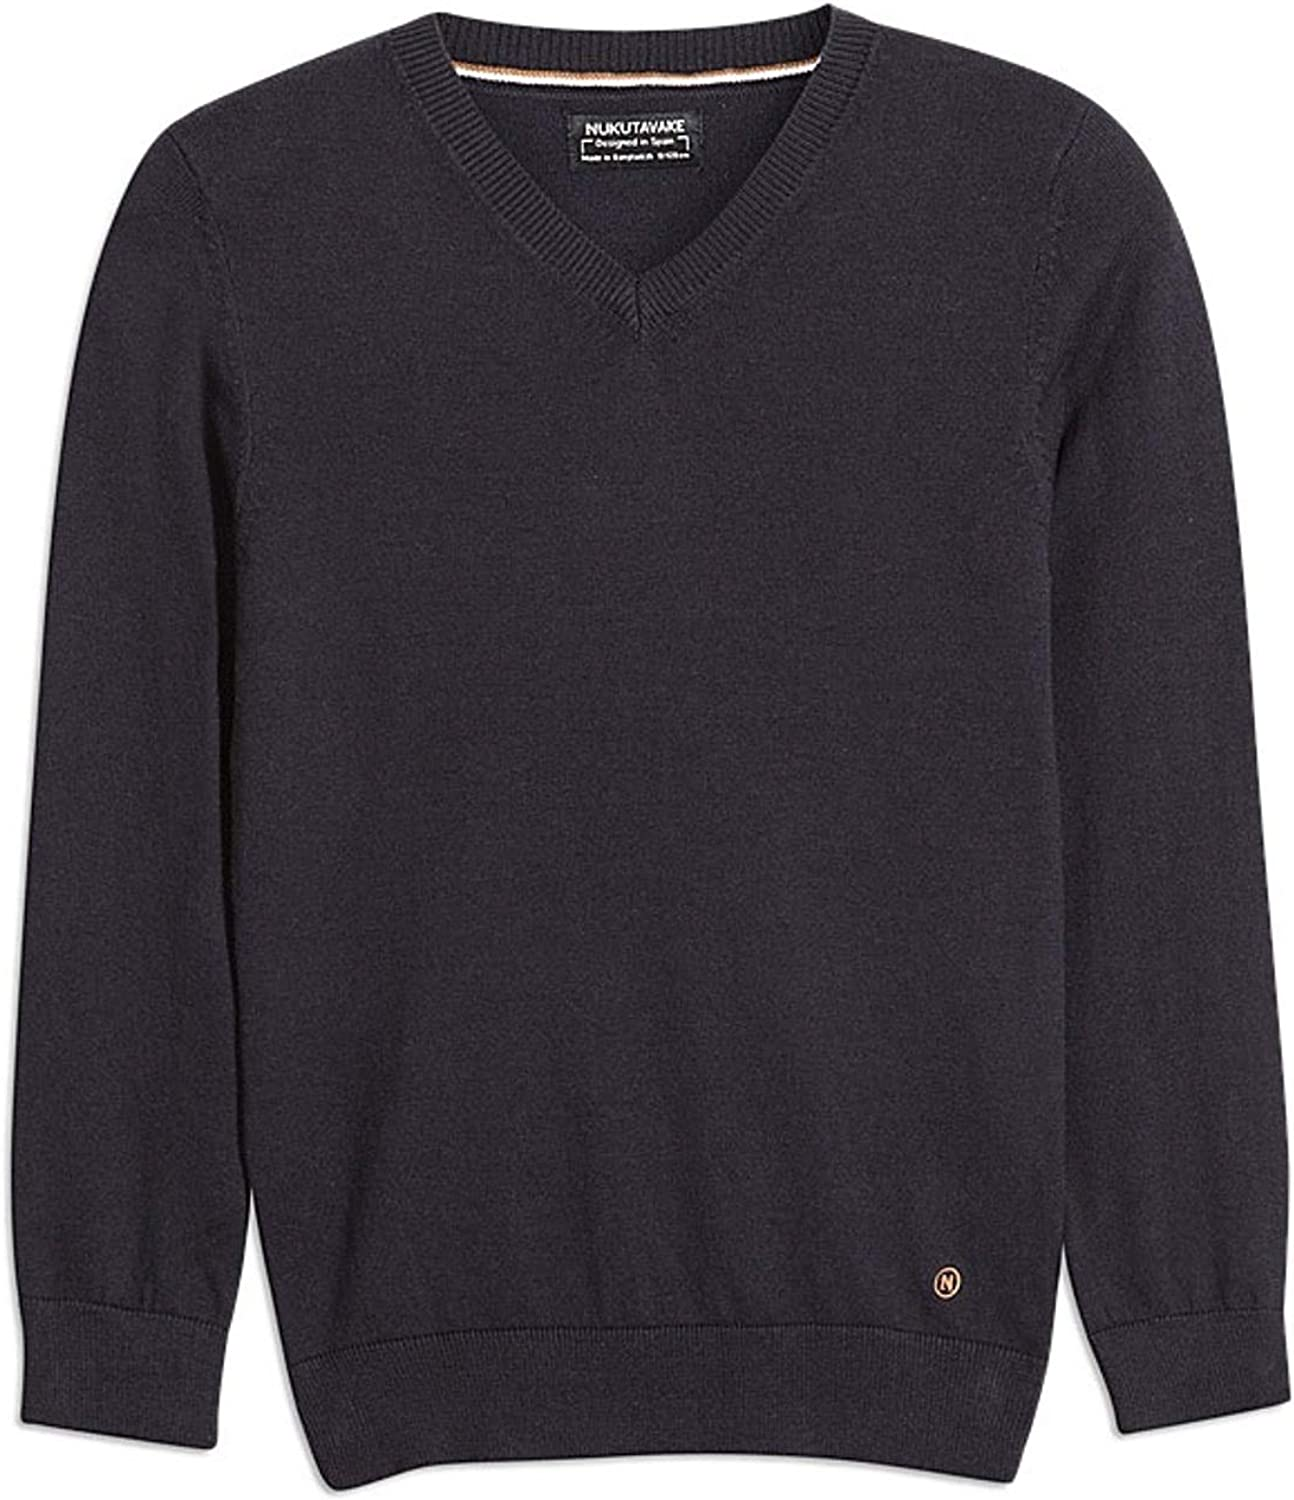 Mayoral - Basic Cotton Sweater for Boys - 0354, Navy